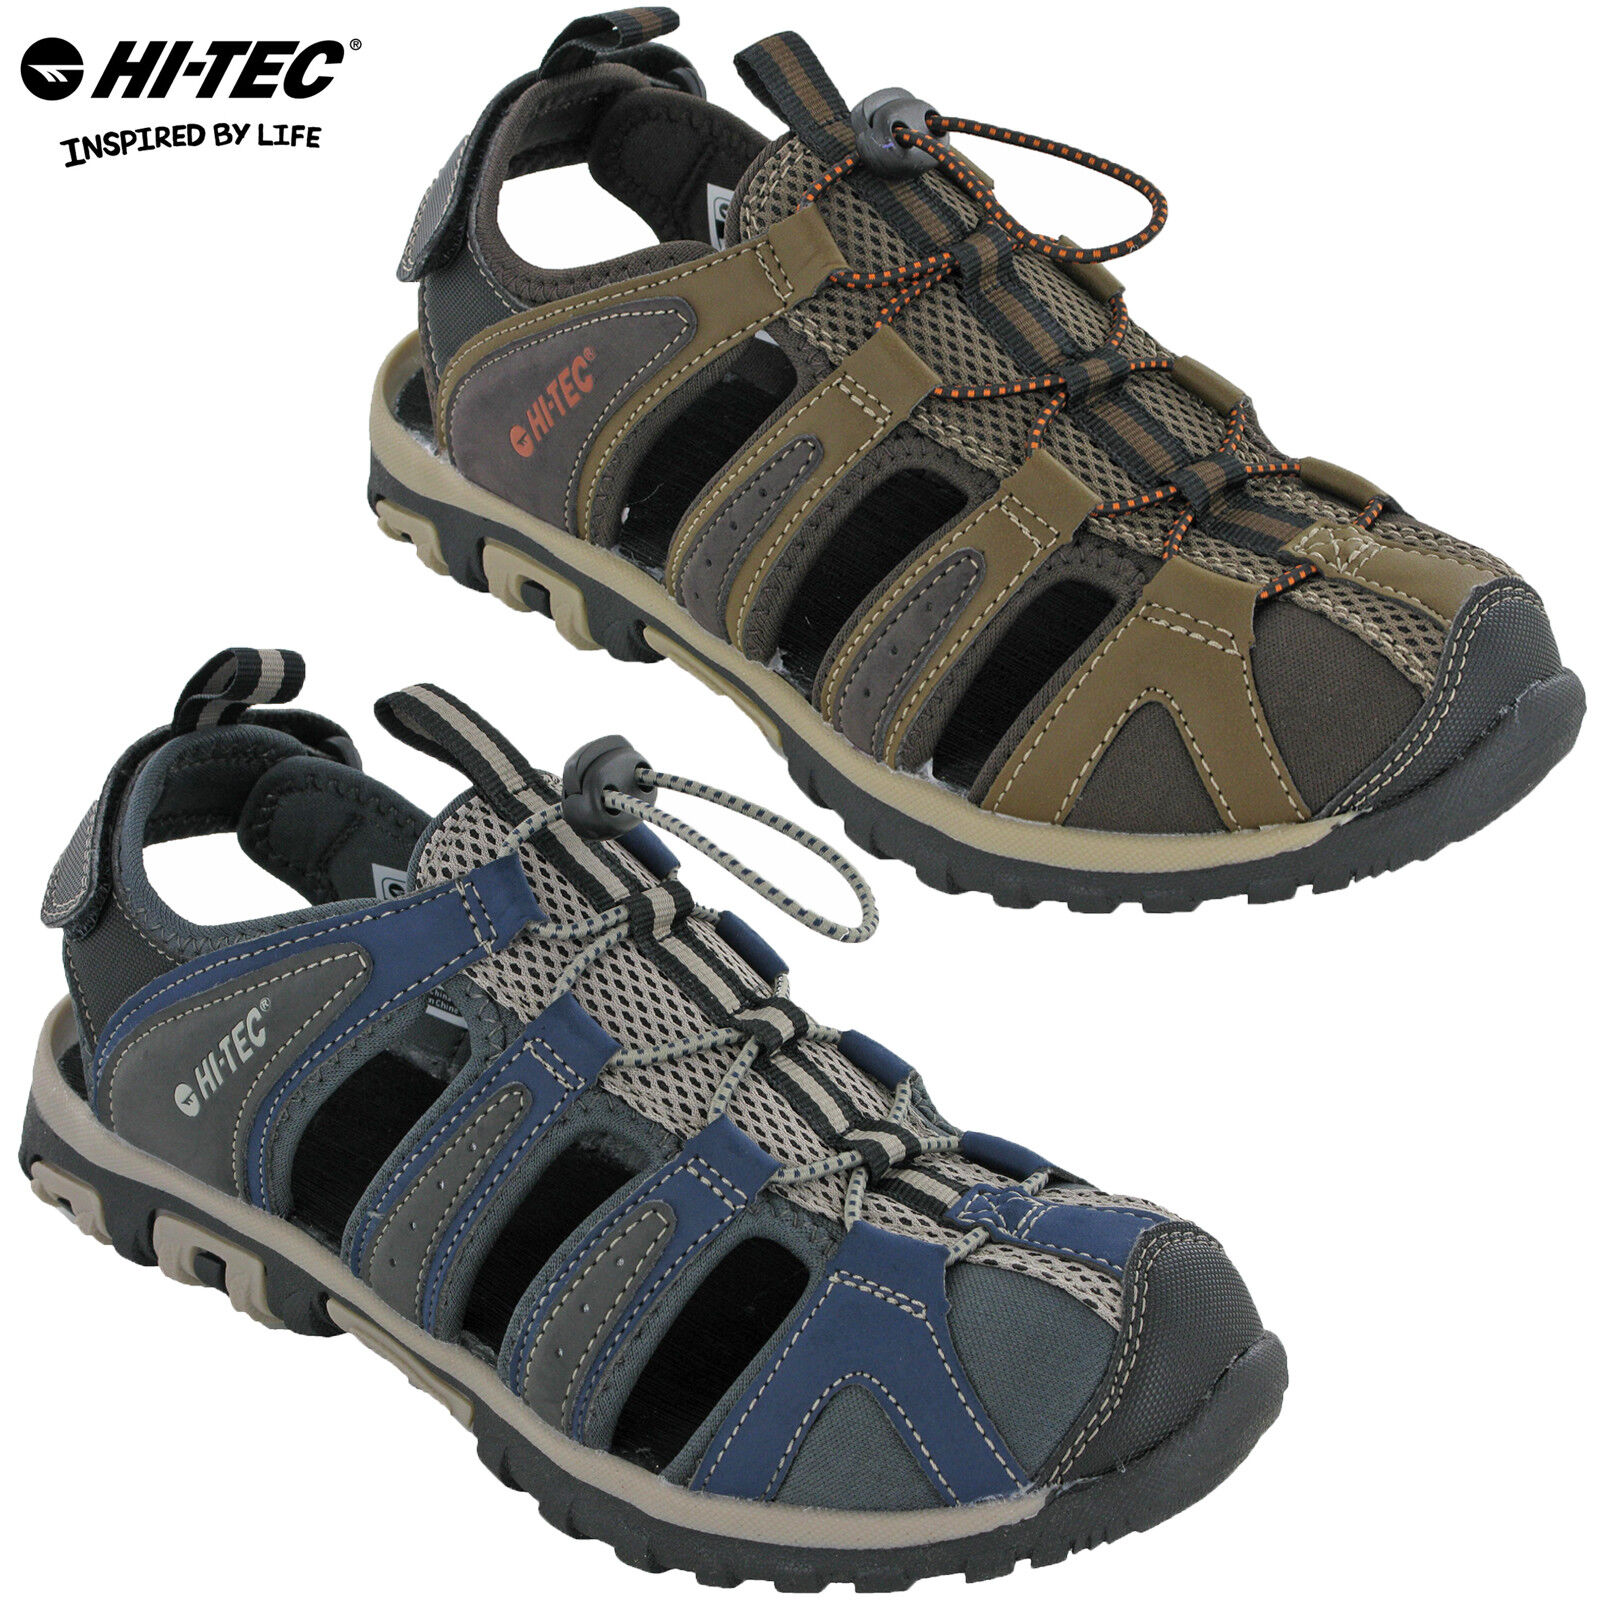 Hi-tec Hiking Closed Toe Sandals Walking COVE BREEZE Mens Toggle Fasten Comfort